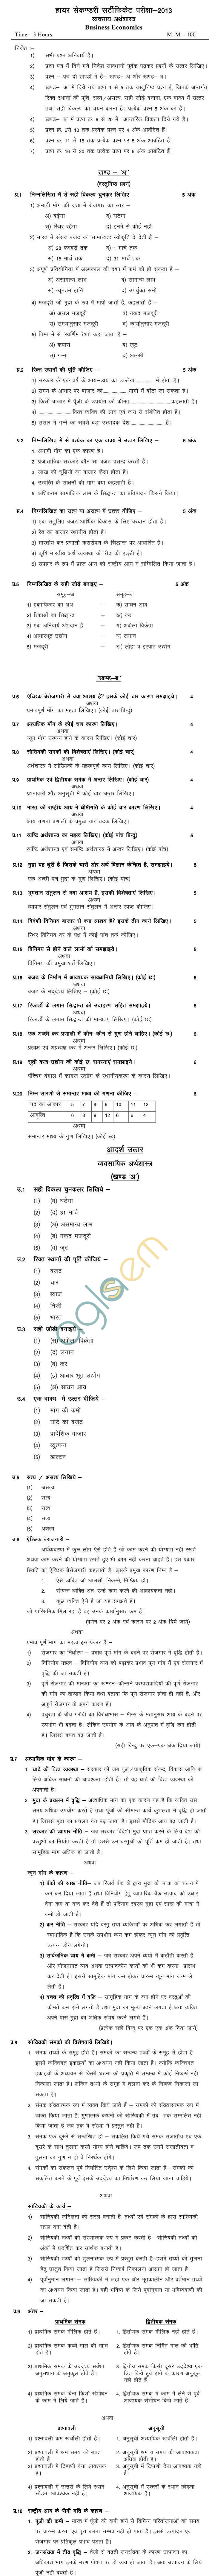 MP Board Class XII Business Economics Model Questions & Answers - Set 1